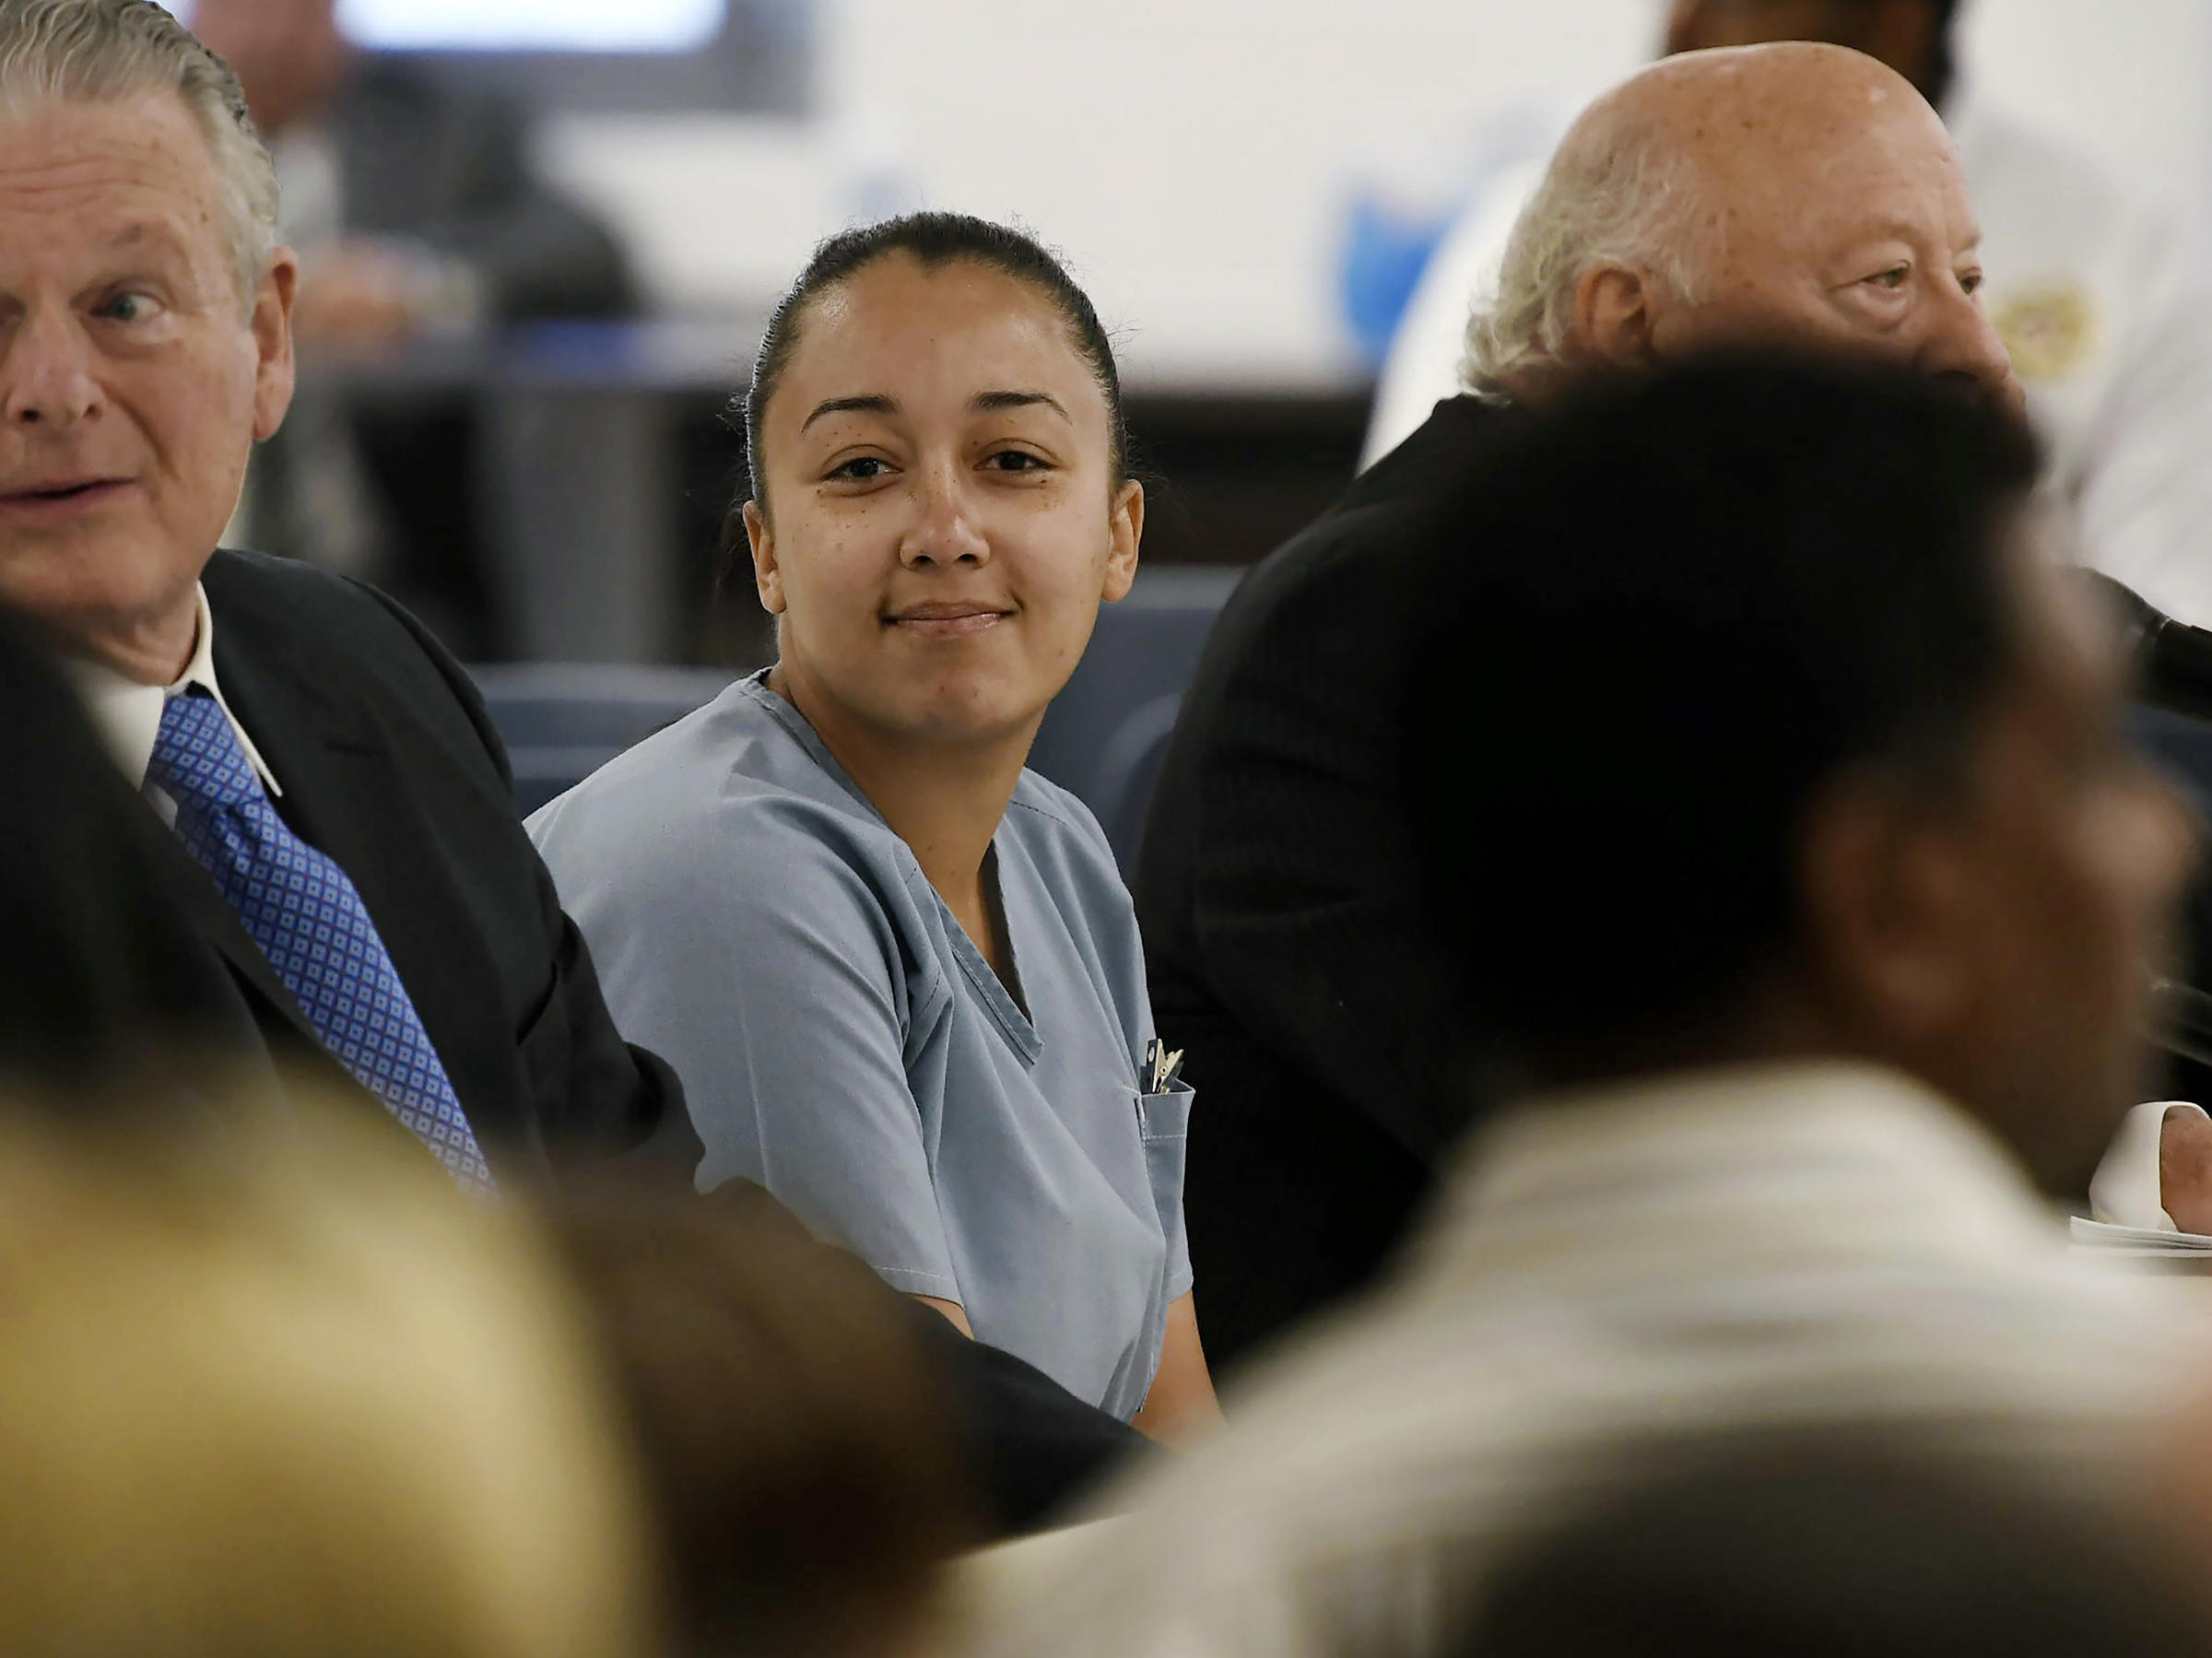 Cyntoia Brown Released After 15 Years In Prison For Murder | KLCC